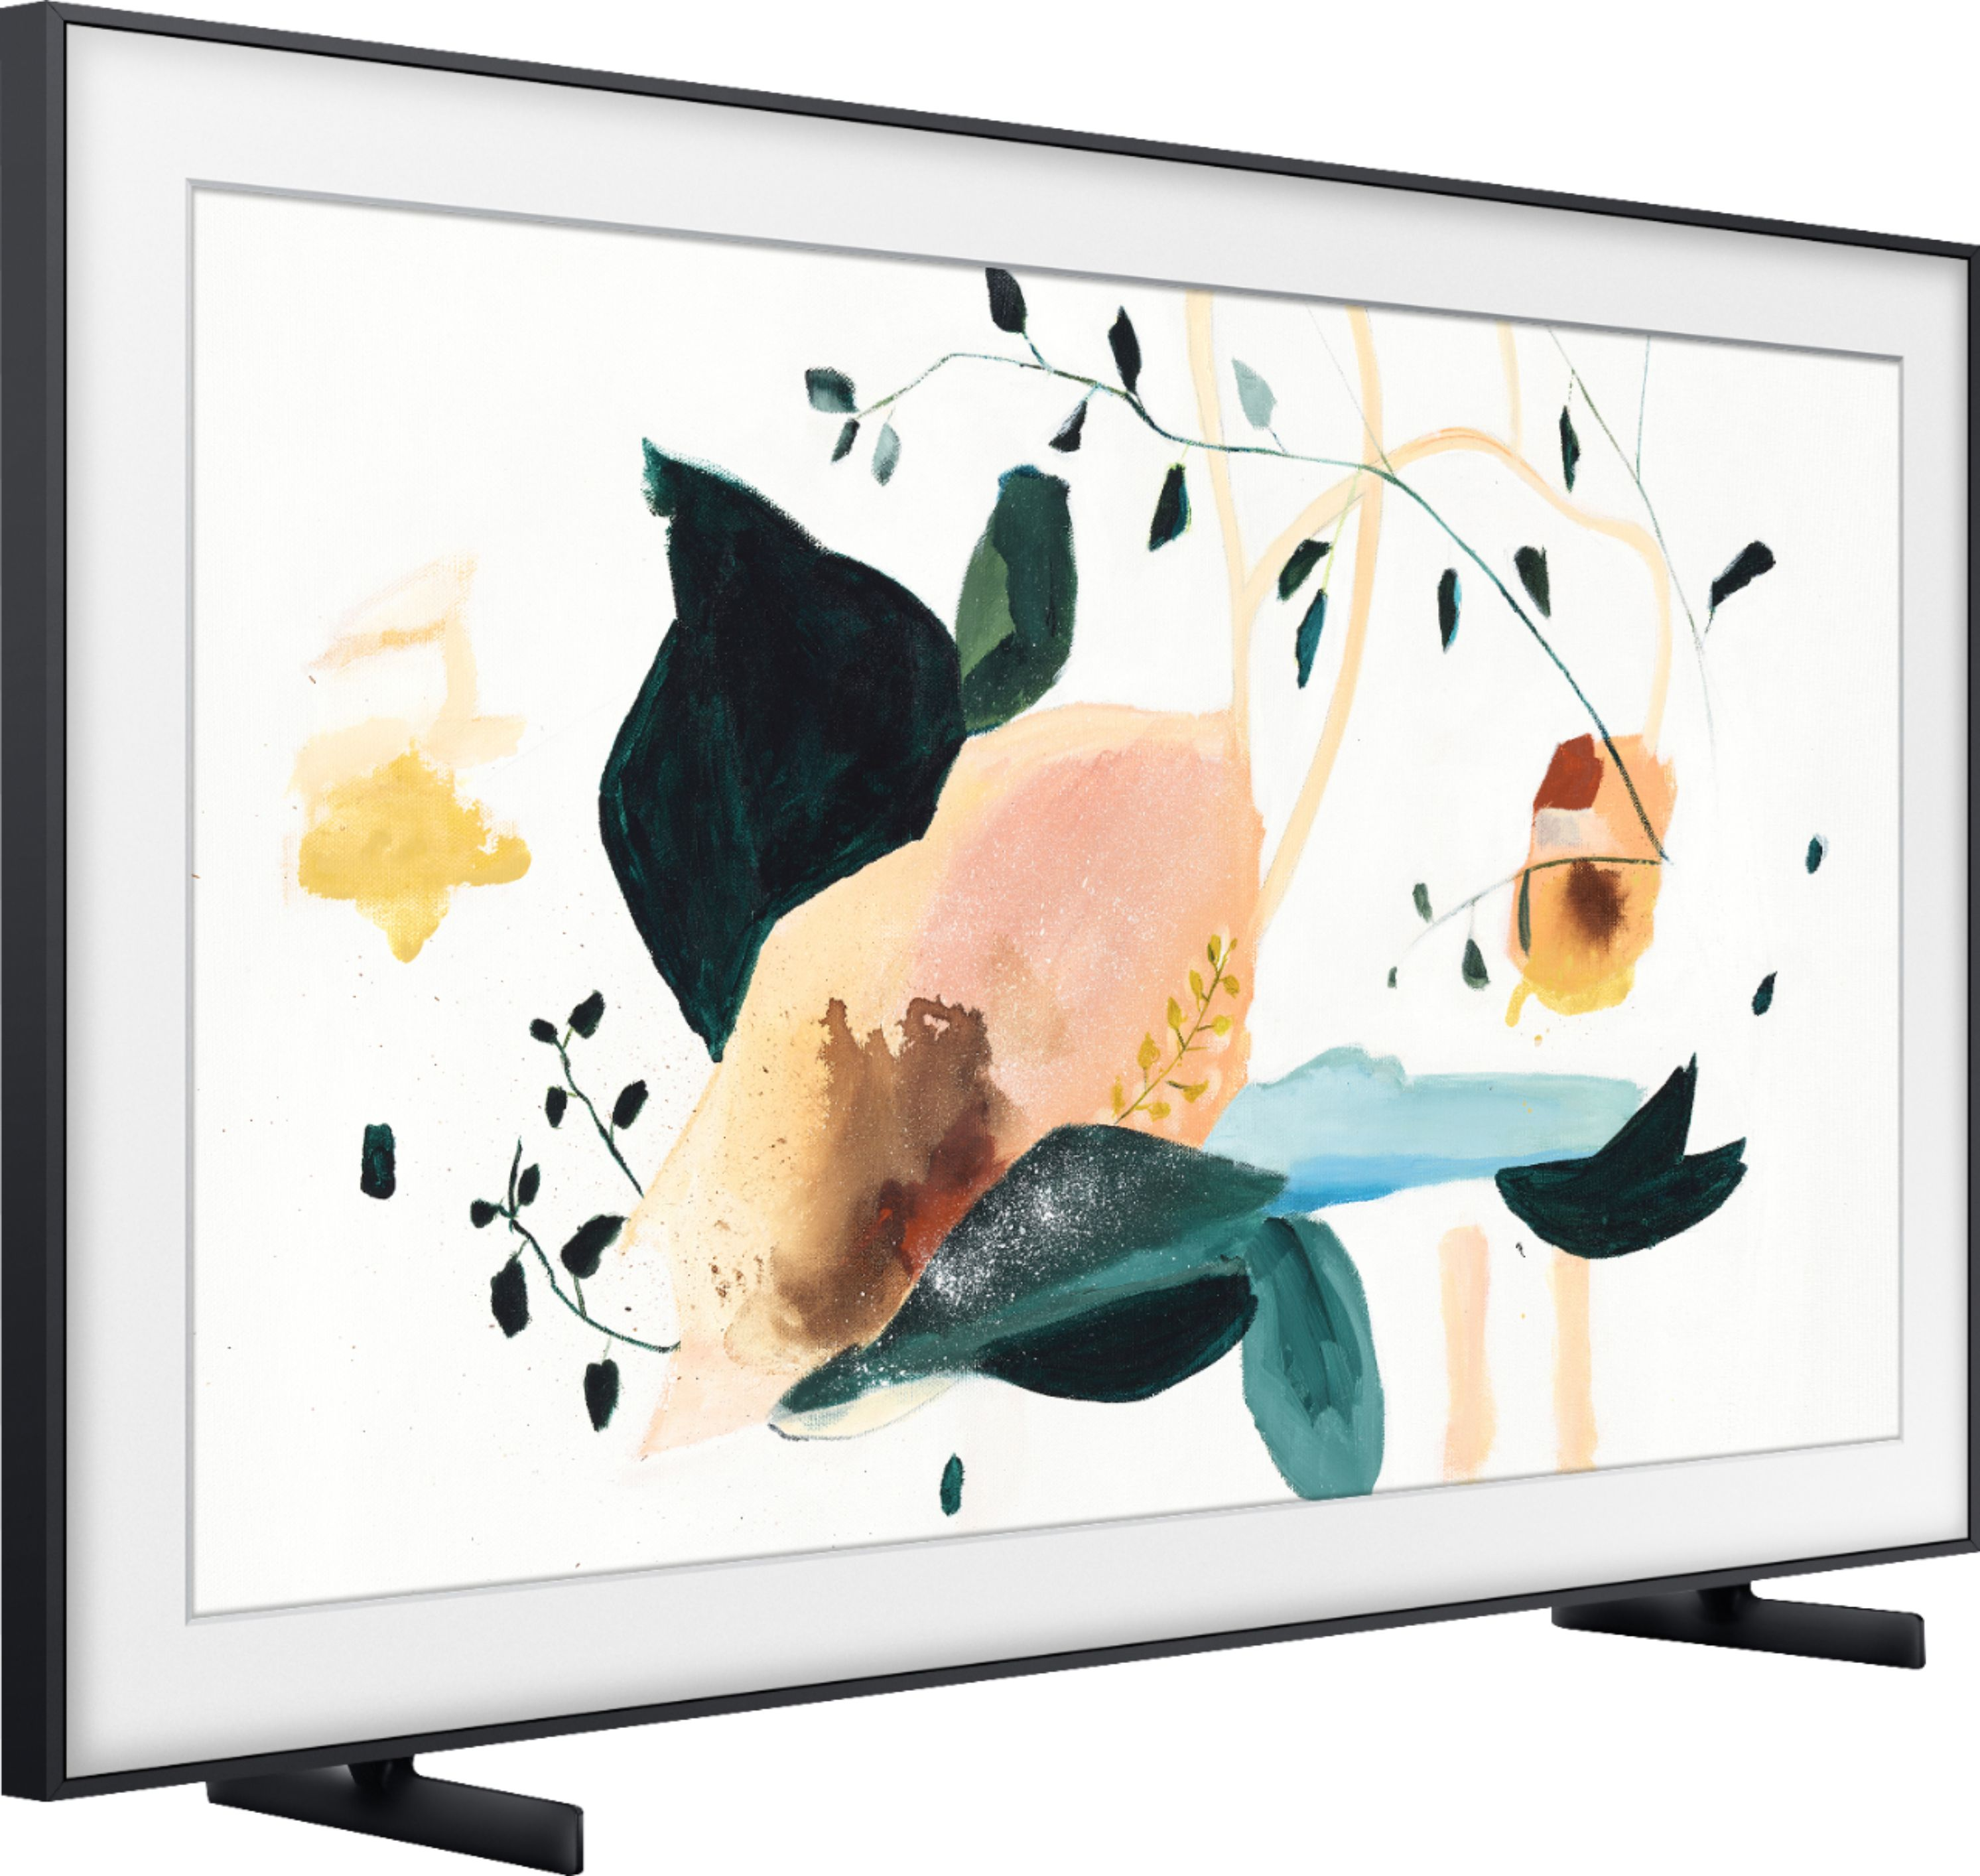 "55"" The Frame Series 4K UHD TV Smart LED with HDR"